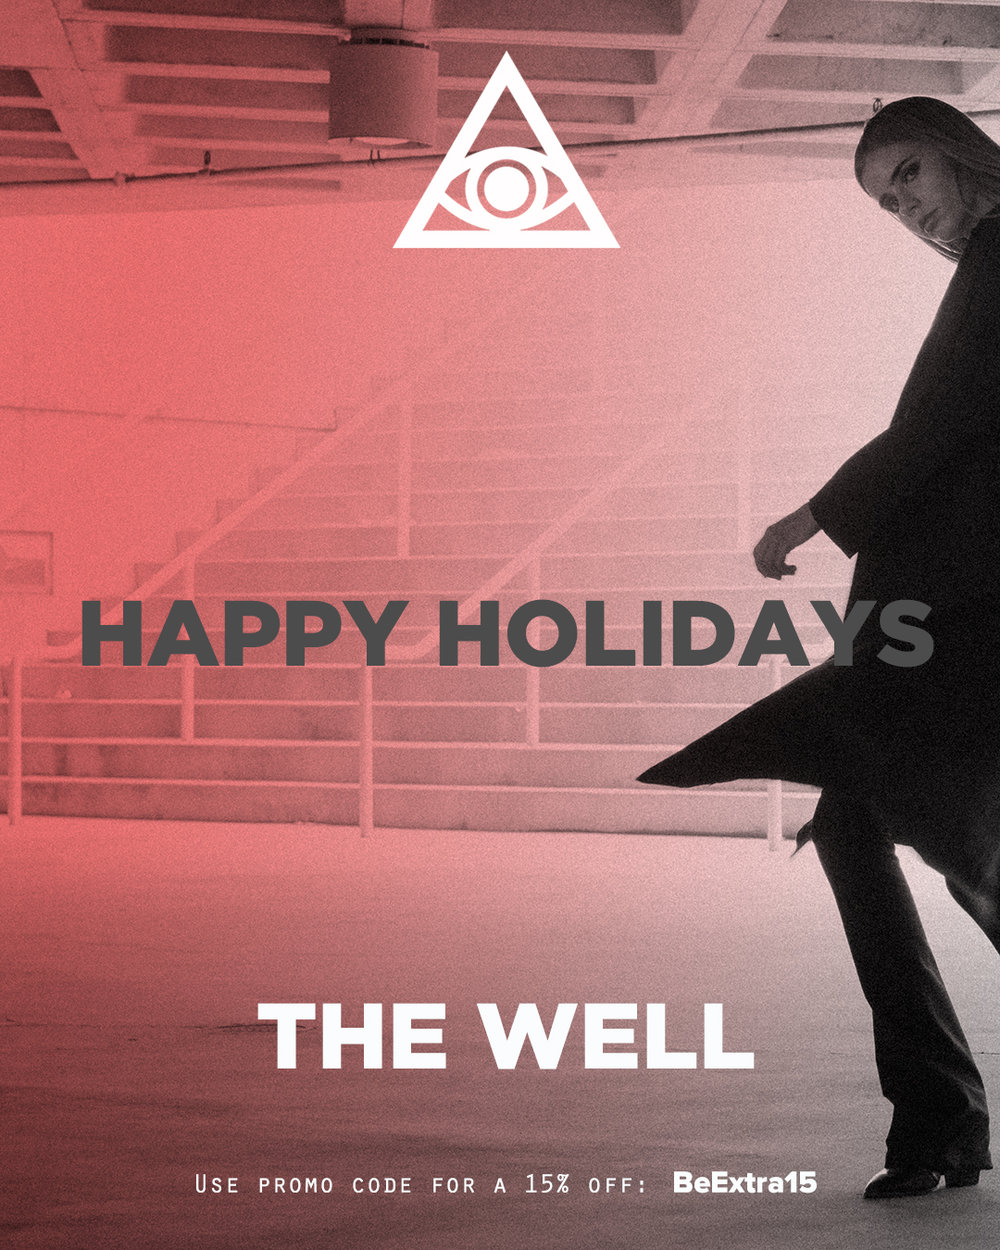 HOLIDAY_THEWELL.jpg